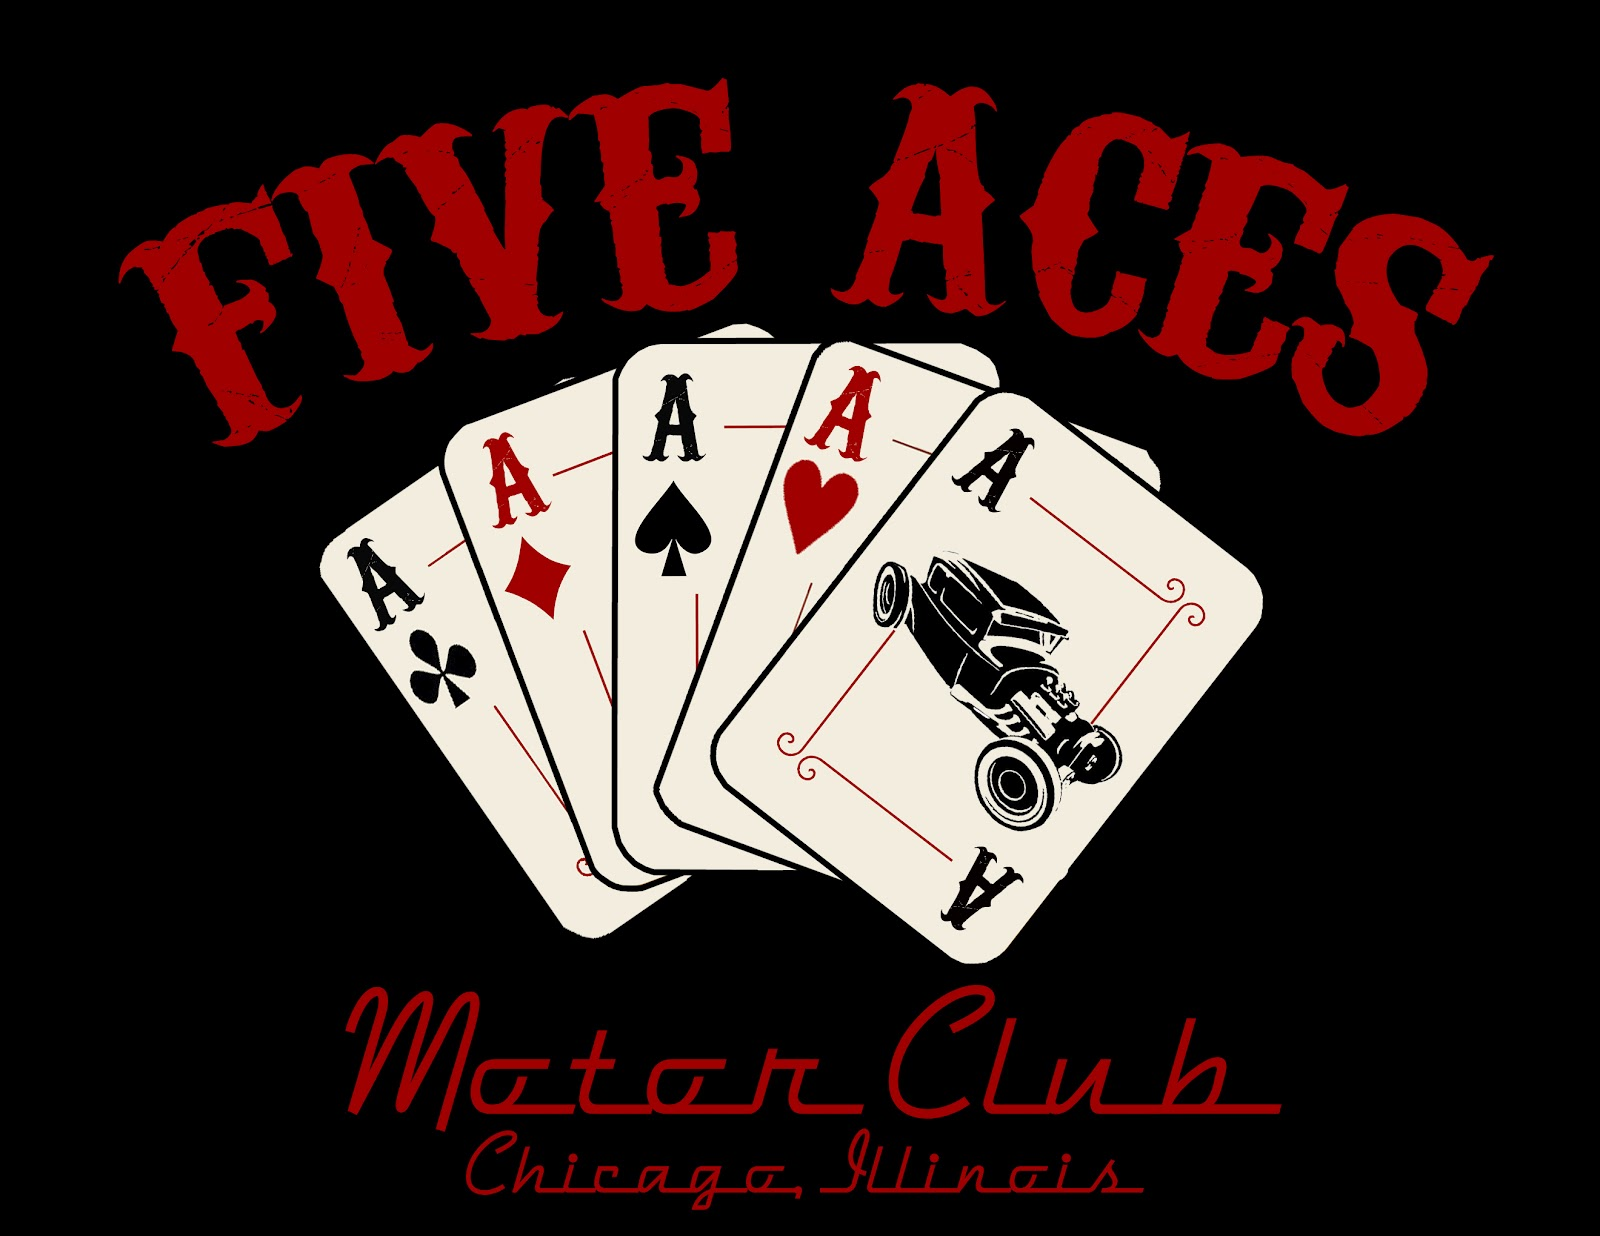 5 aces & deuces bar pittsburgh pa zip code